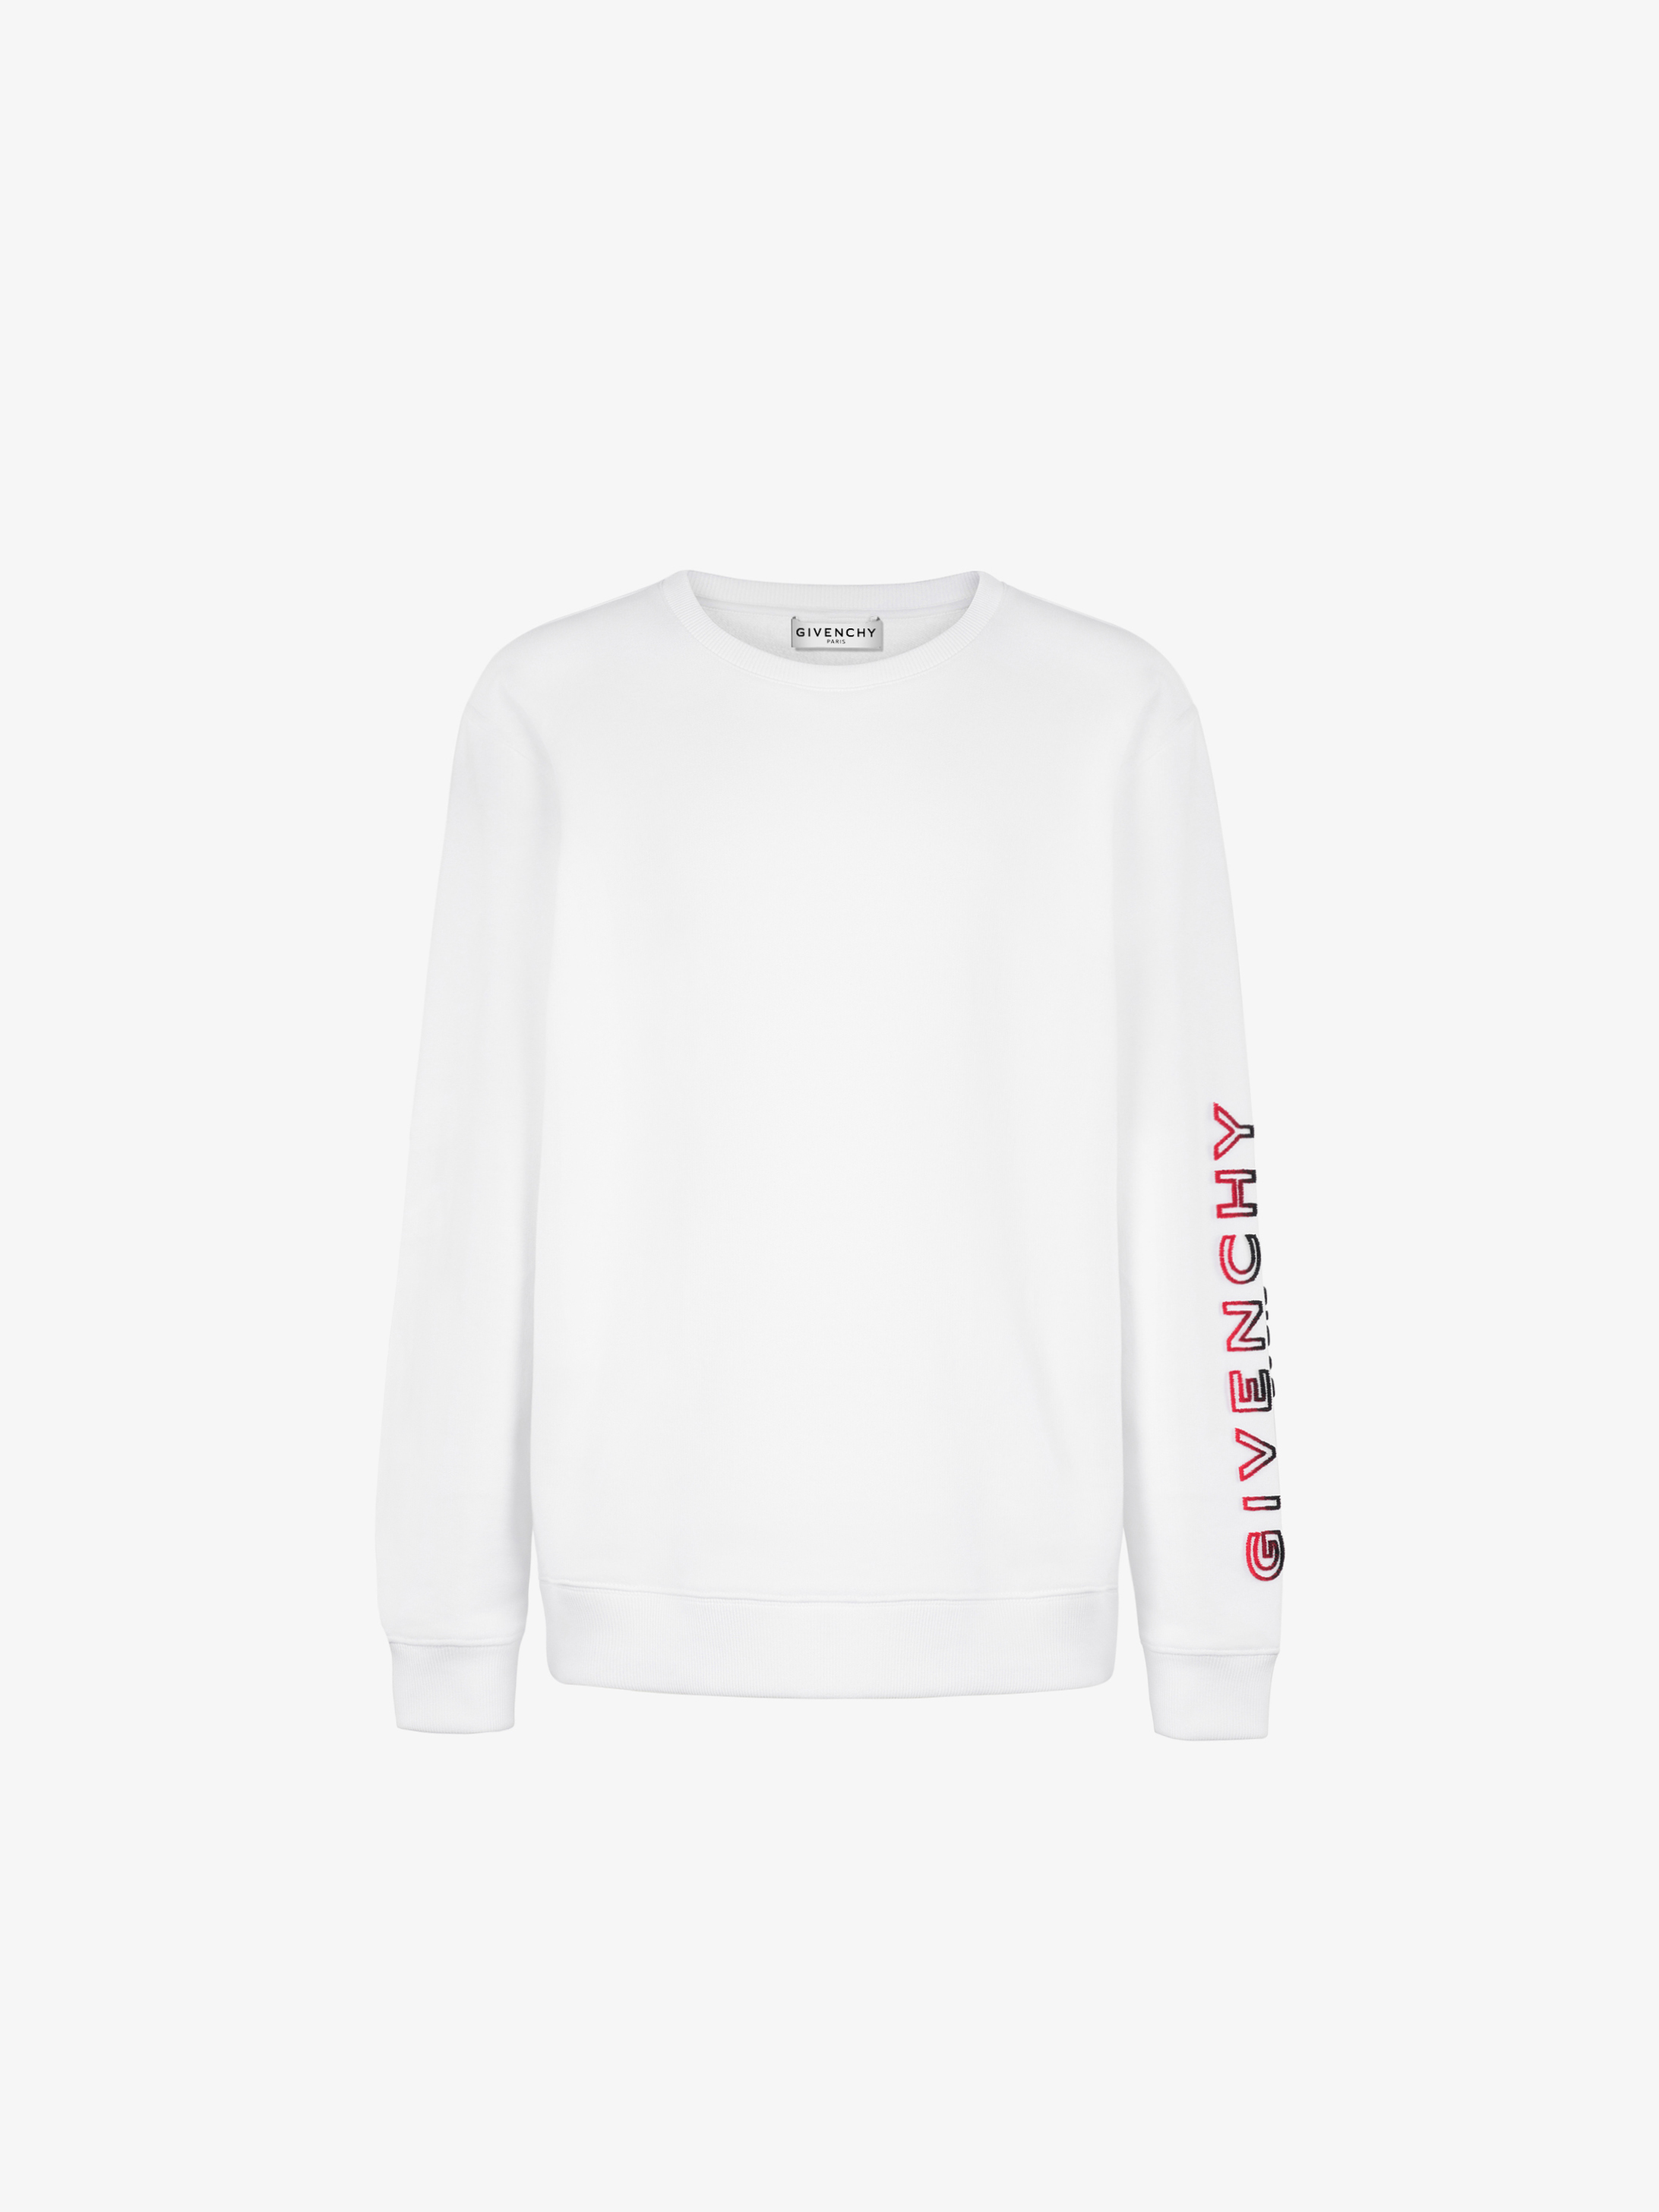 GIVENCHY faded sweatshirt